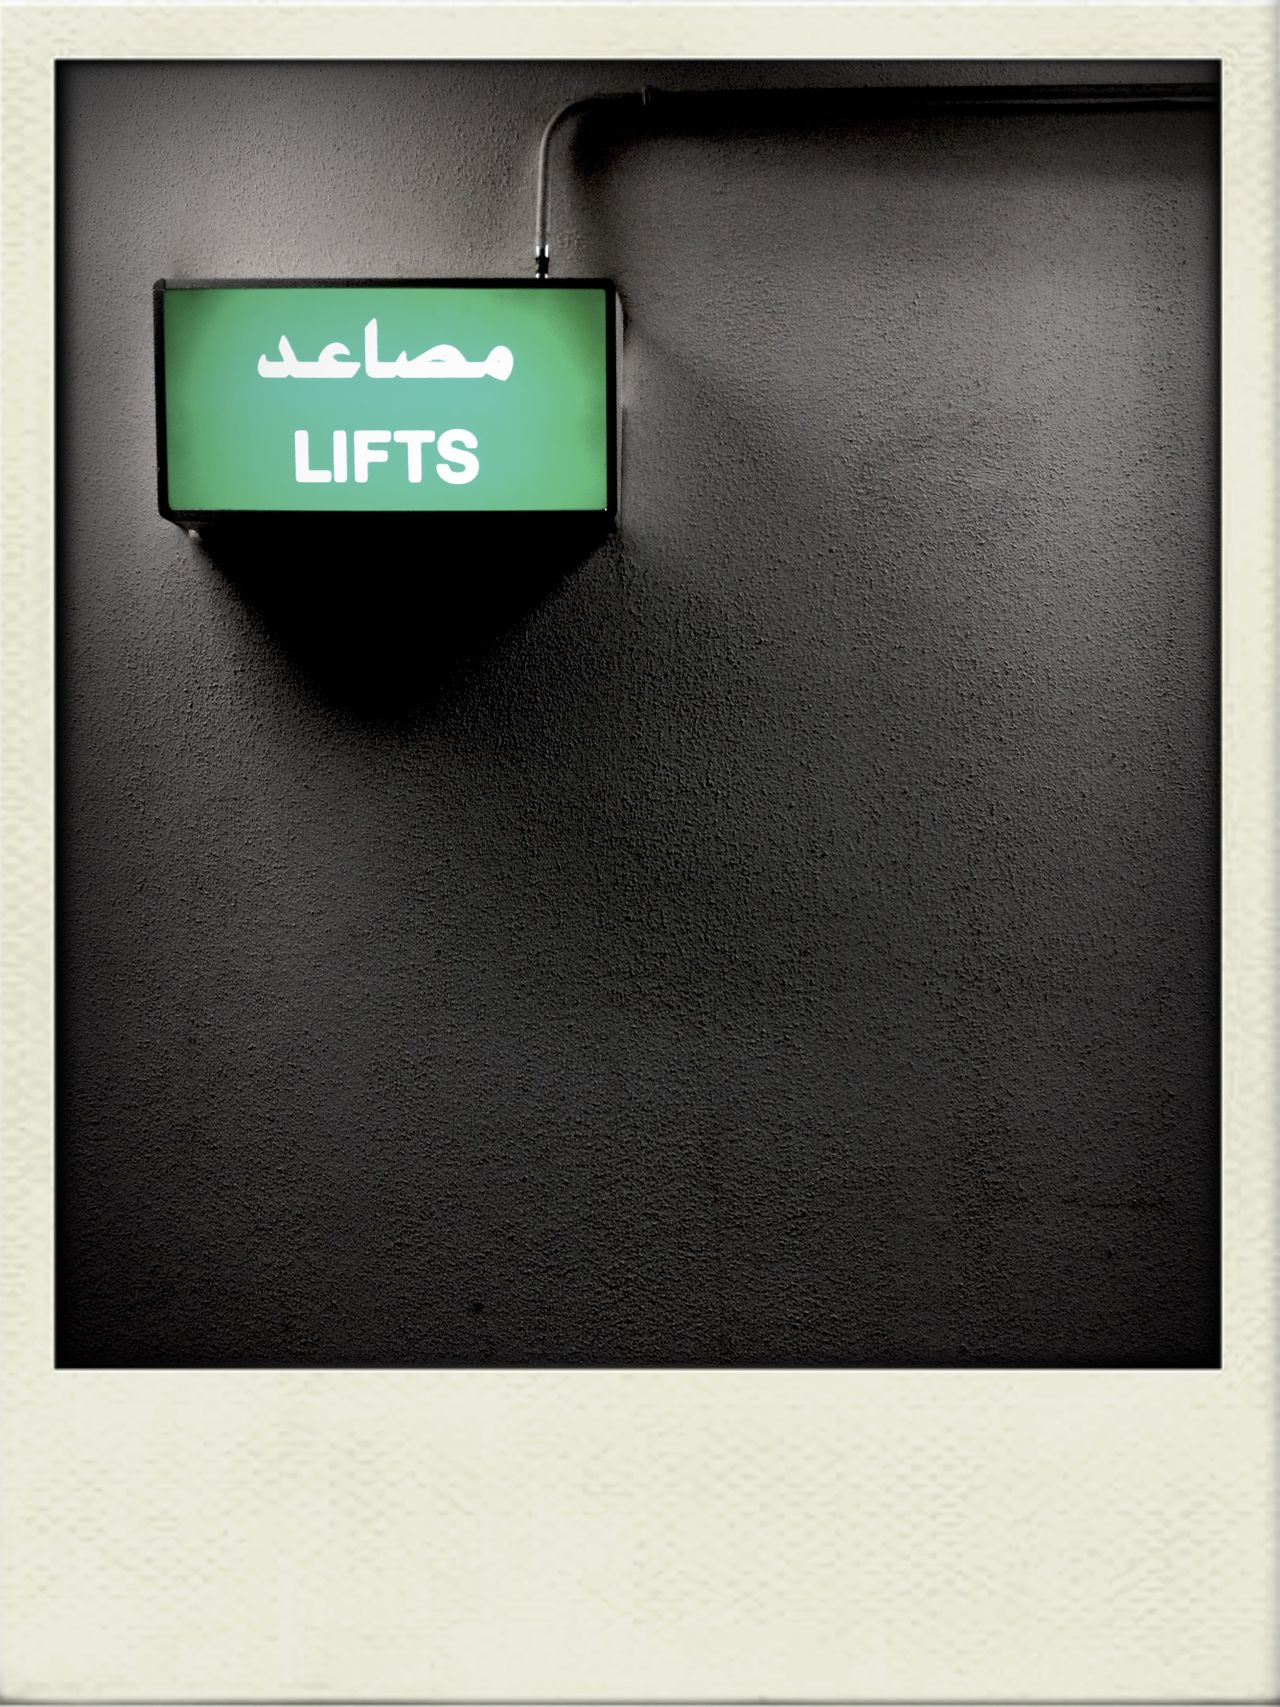 Detail shot of lift sign on wall